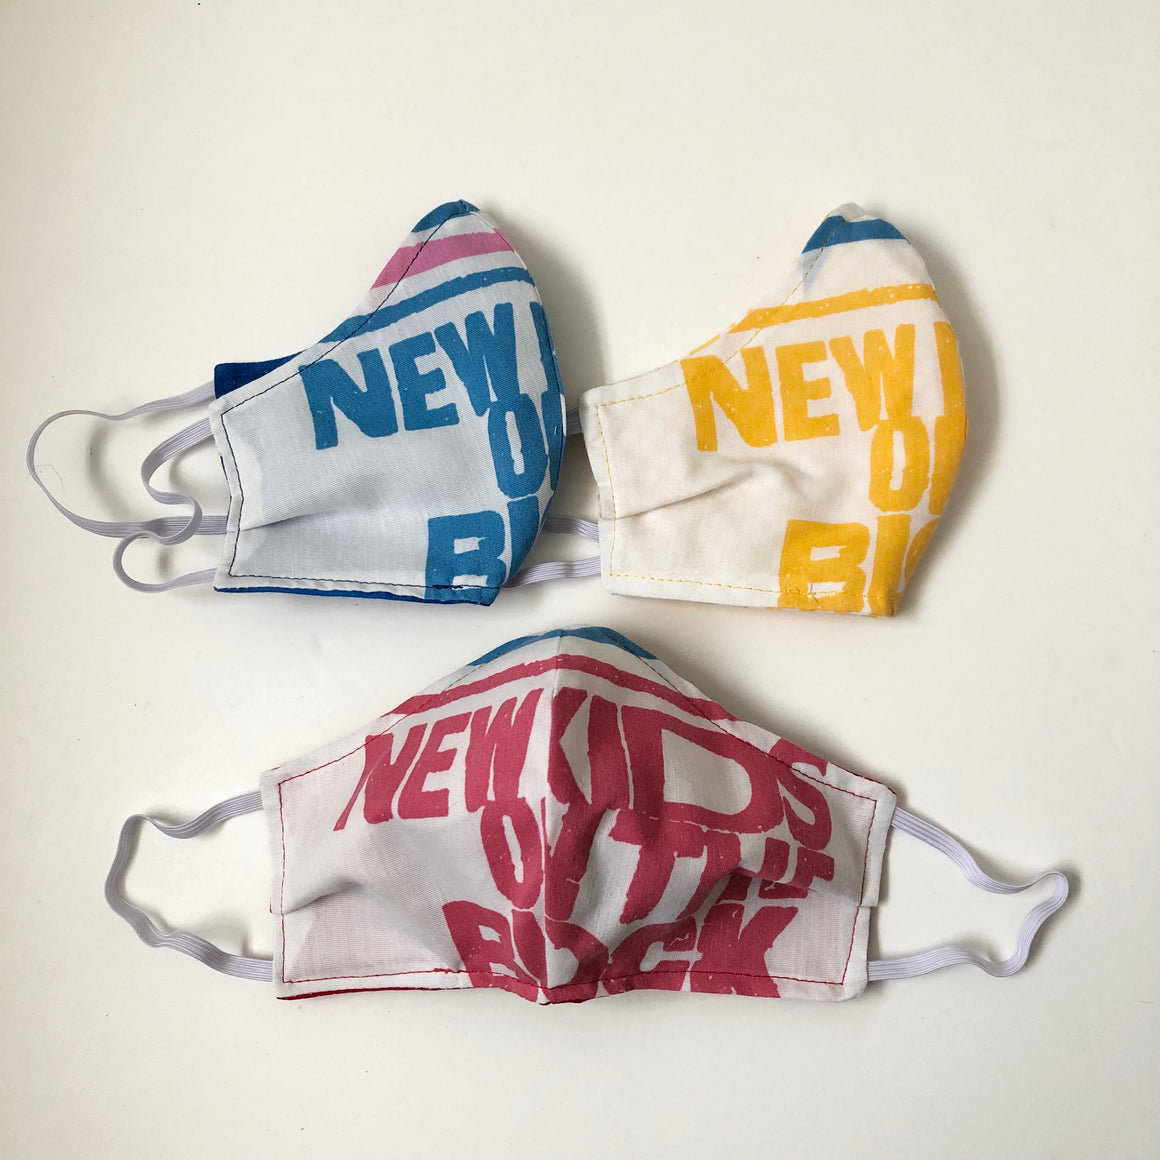 New Kids on the Block Face Mask